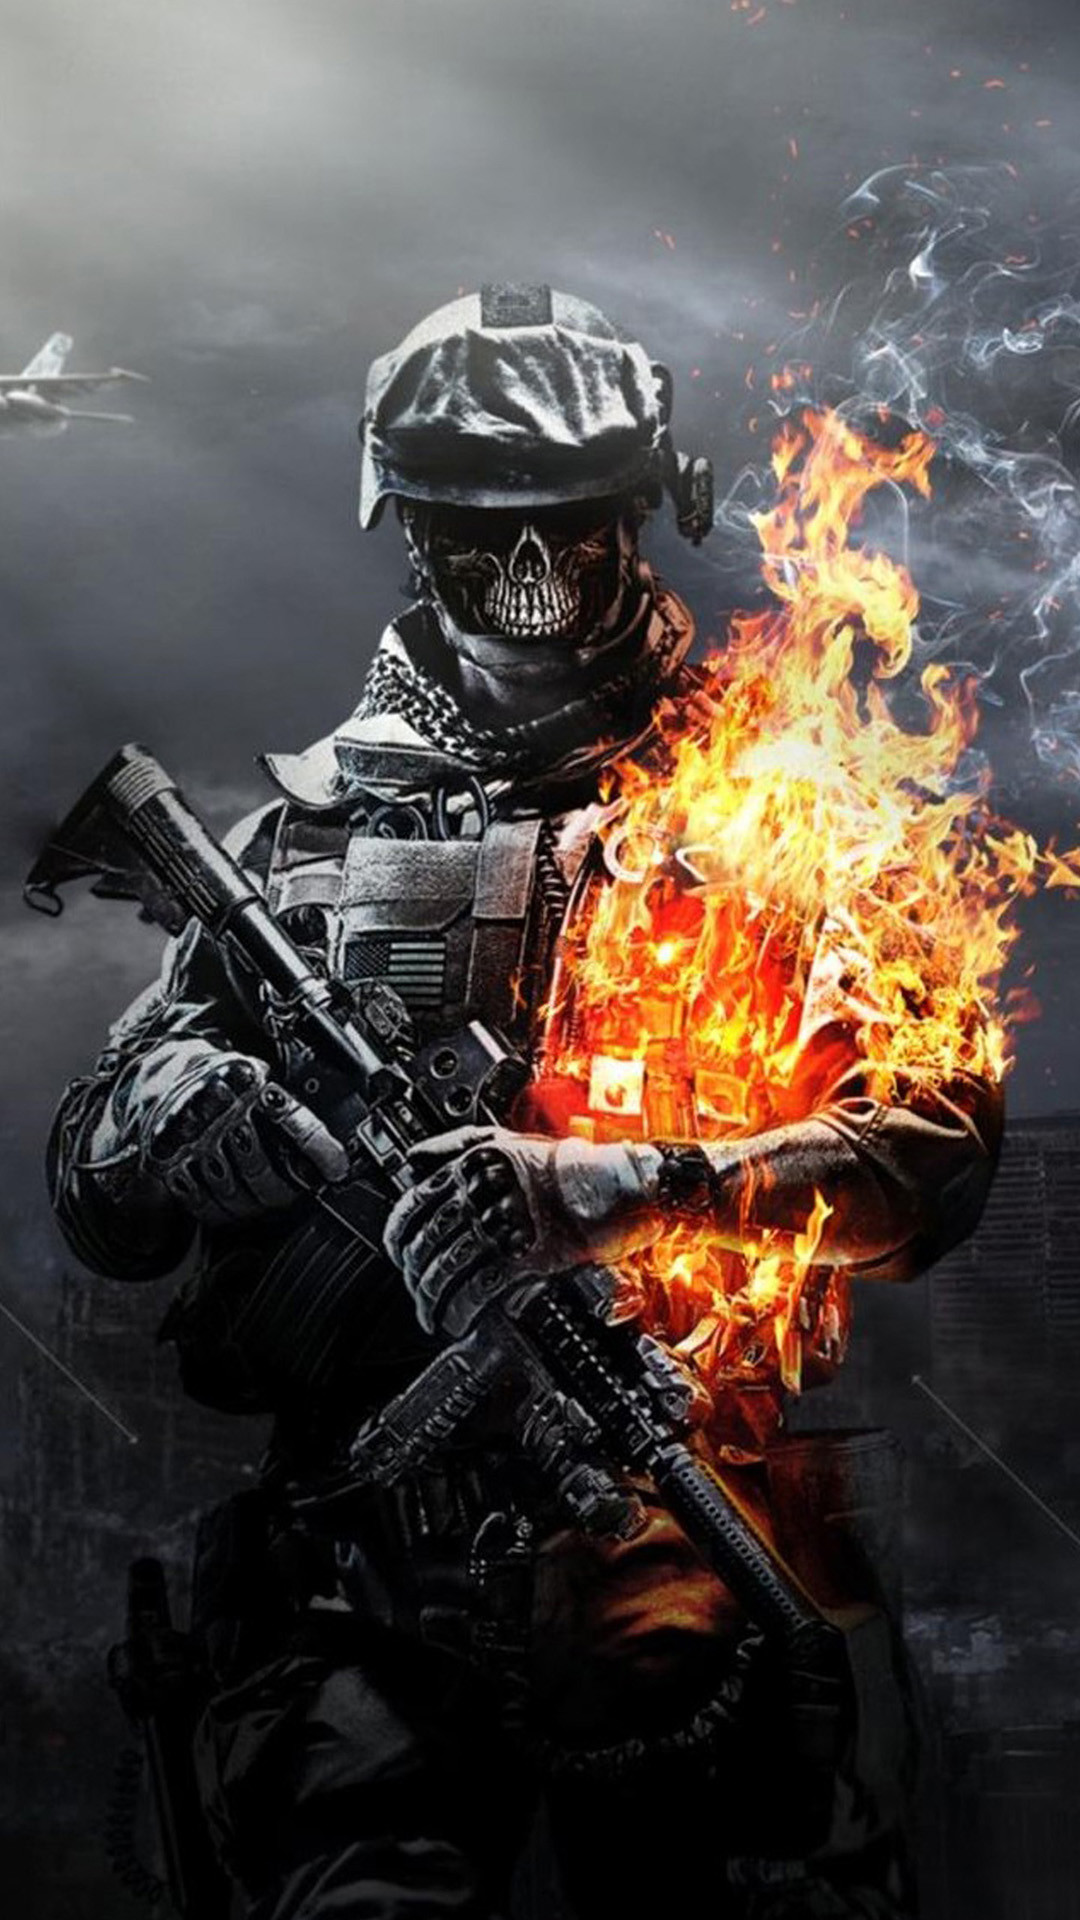 Call Of Duty Modern Warfare 2 Hd Wallpapers Posted By Ethan Sellers